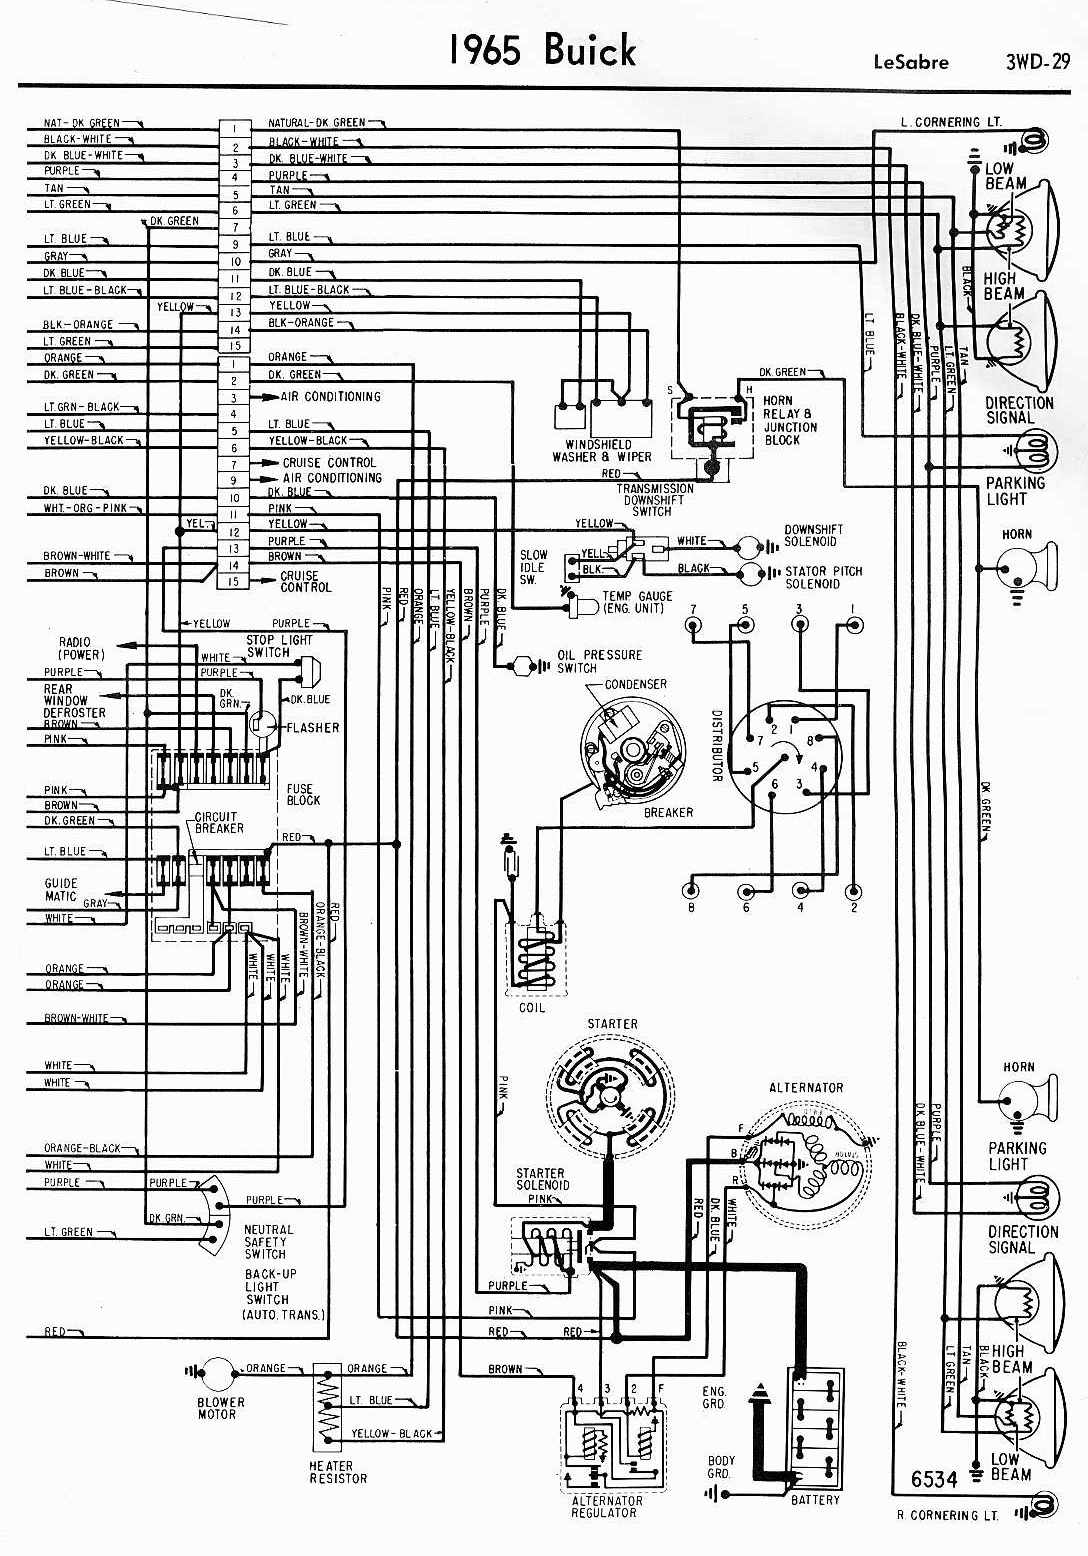 Willys Cj3a Wiring Wire Data Schema Harness Cj2a Diagram Color 32 Mb